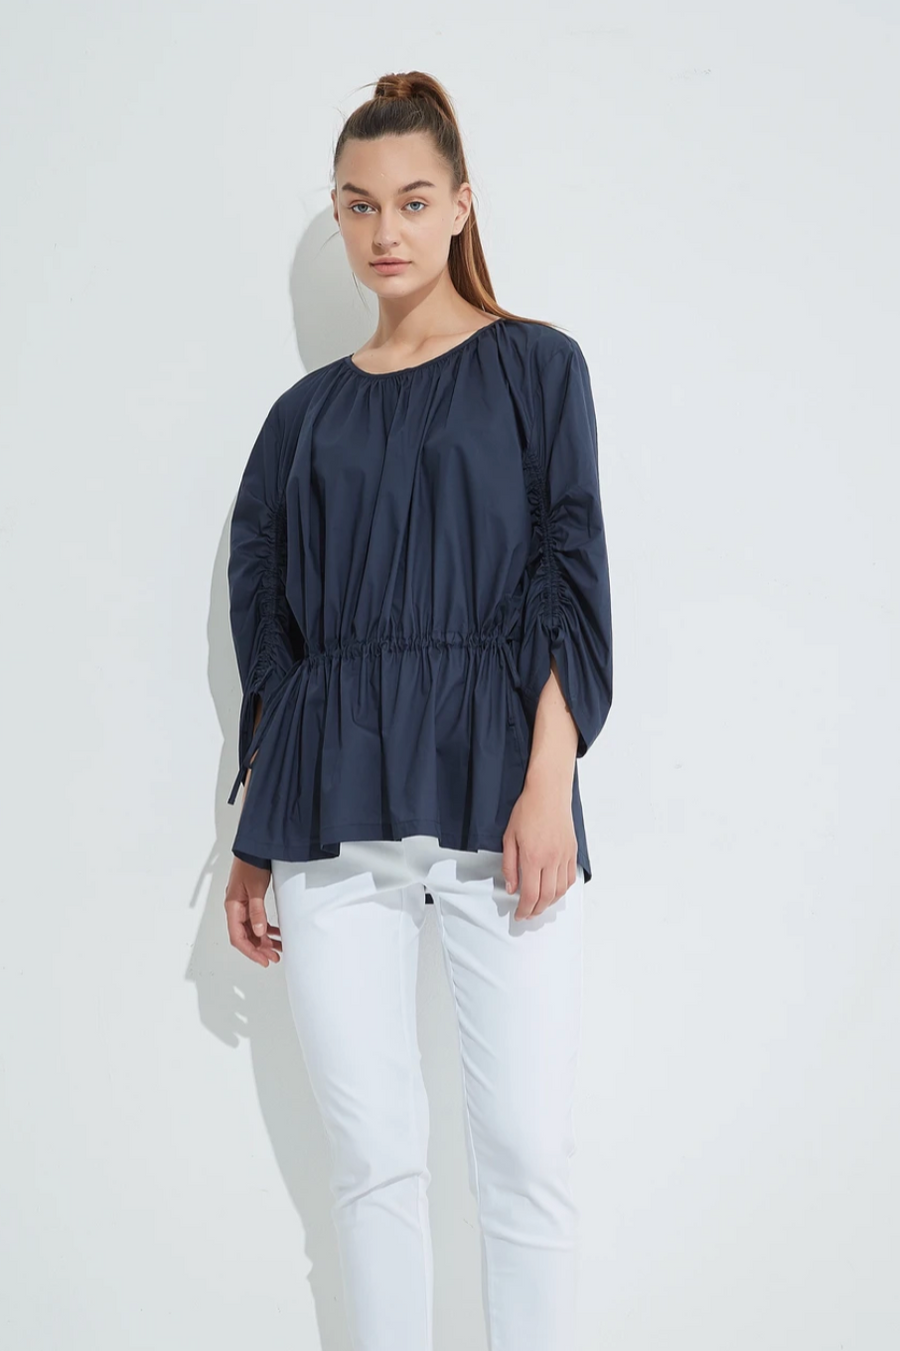 Tie Detail Top - Navy